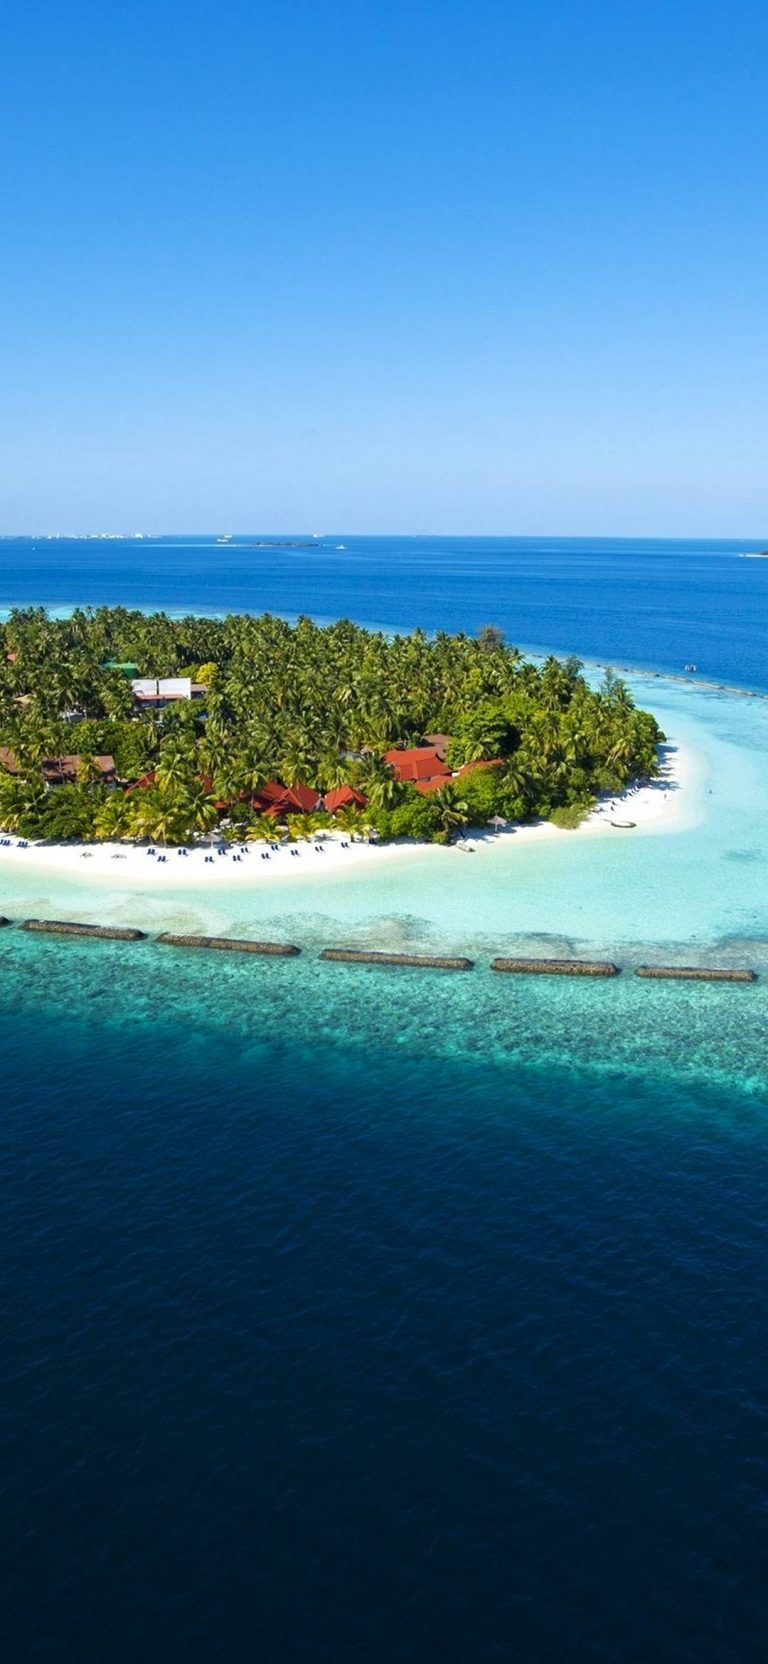 Amazing Maldives Island View 1080x2340 768x1664